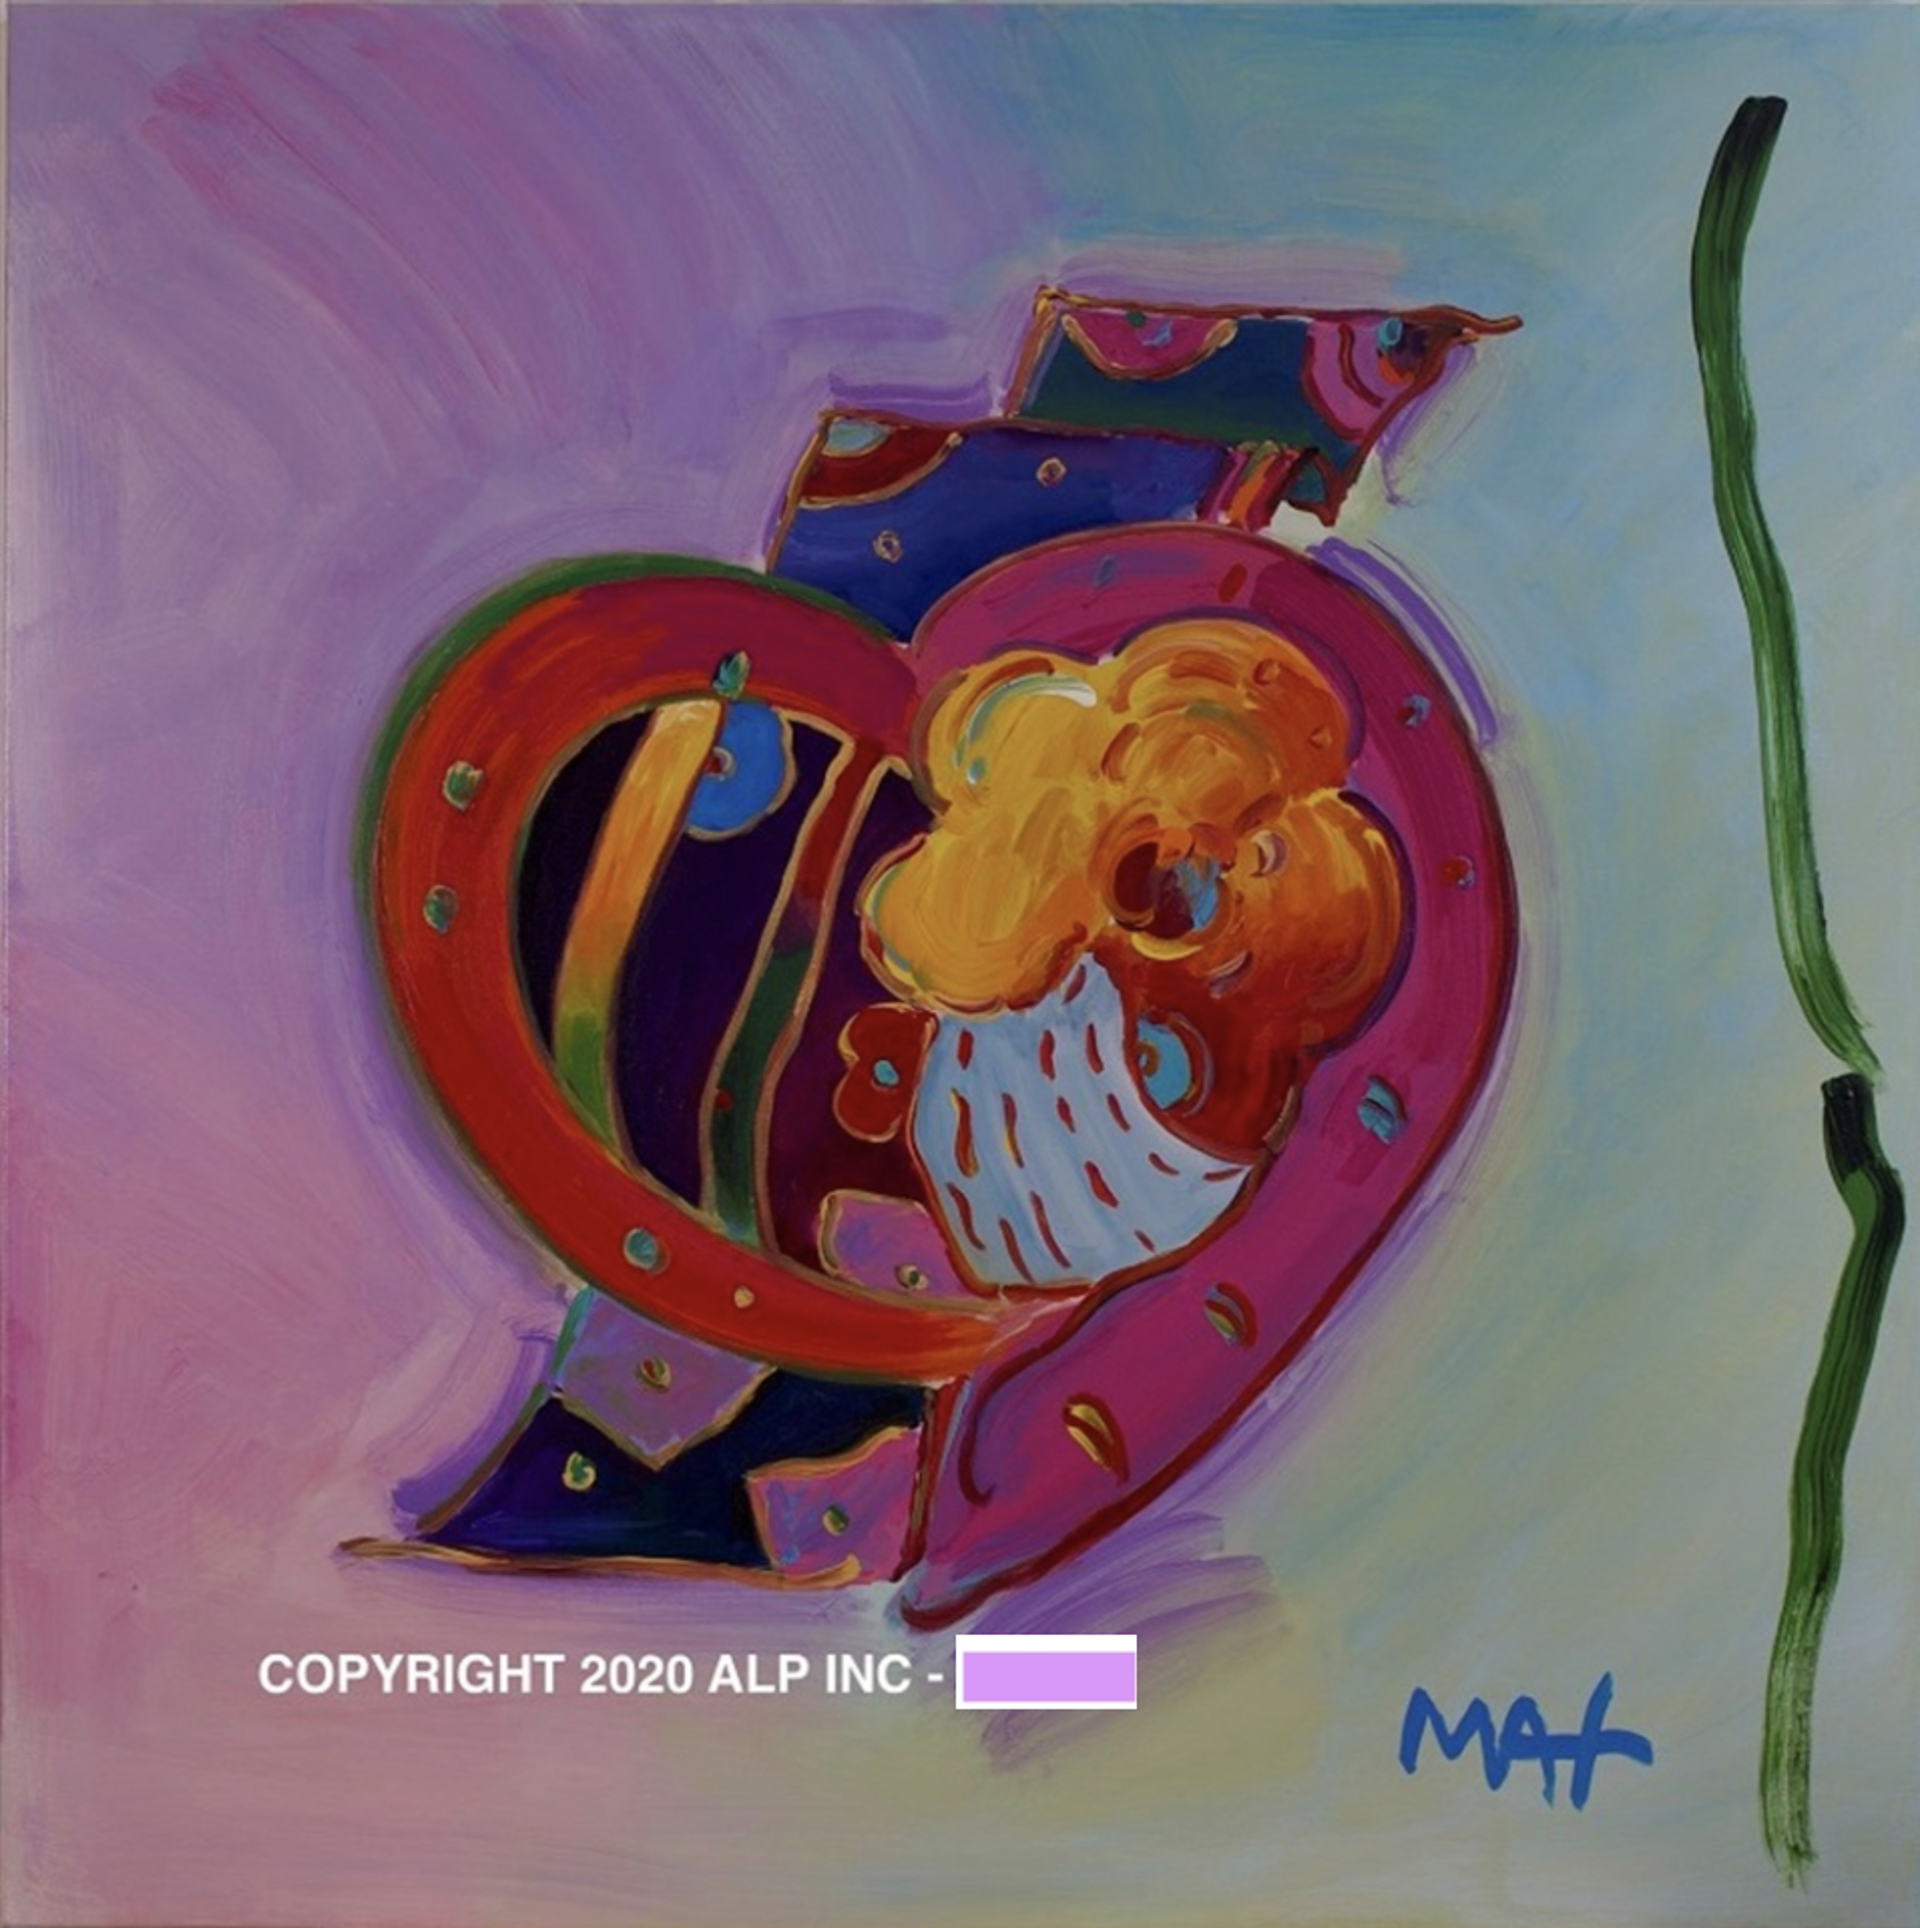 Heart (Rococo) Ver. II #1 - Vintage Collection by Peter Max